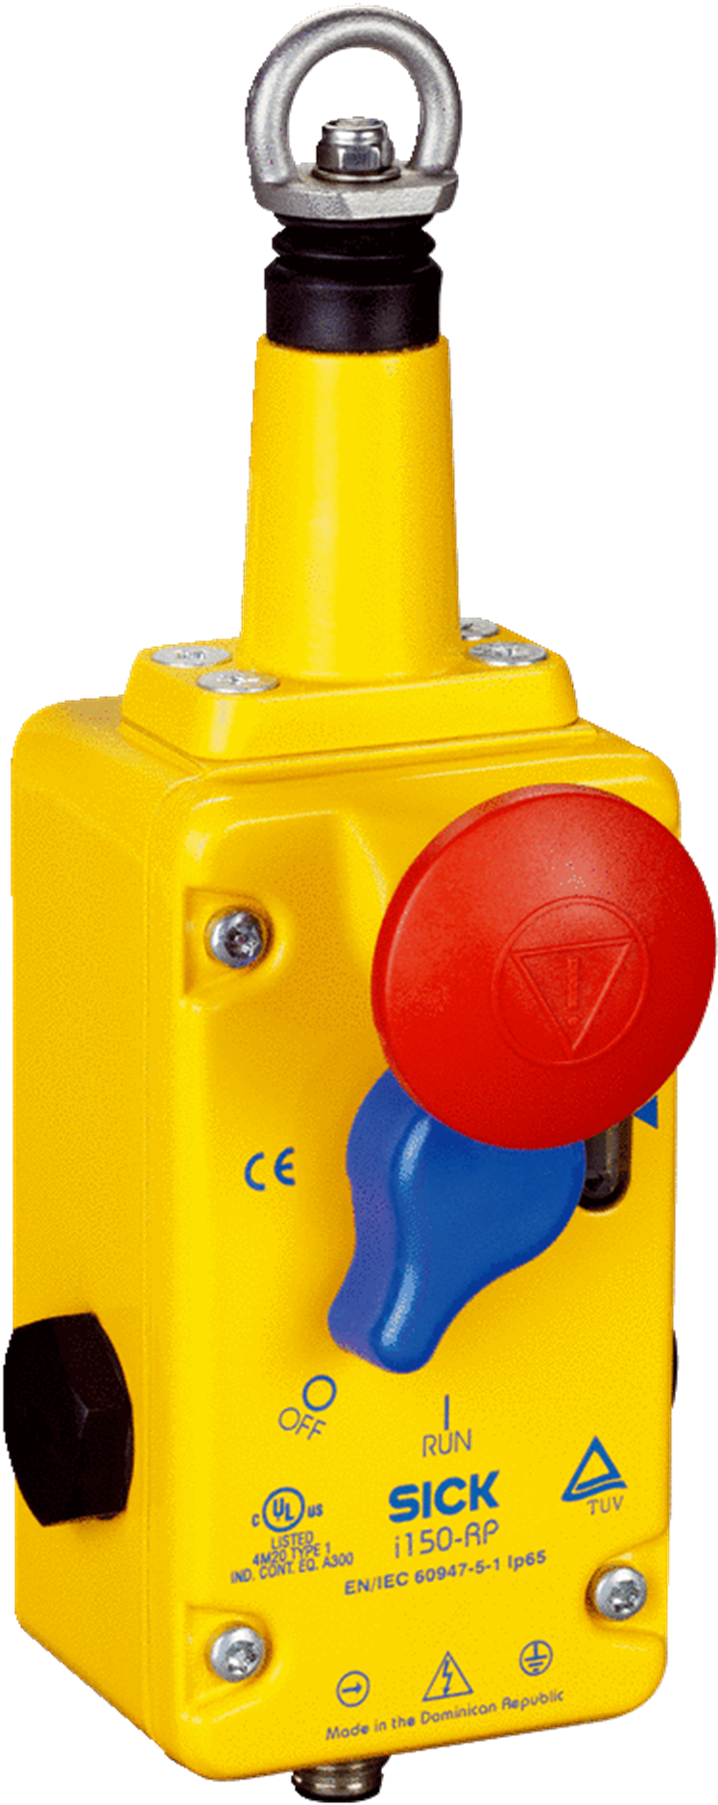 i150-RP224 Safety switch - Image - 1